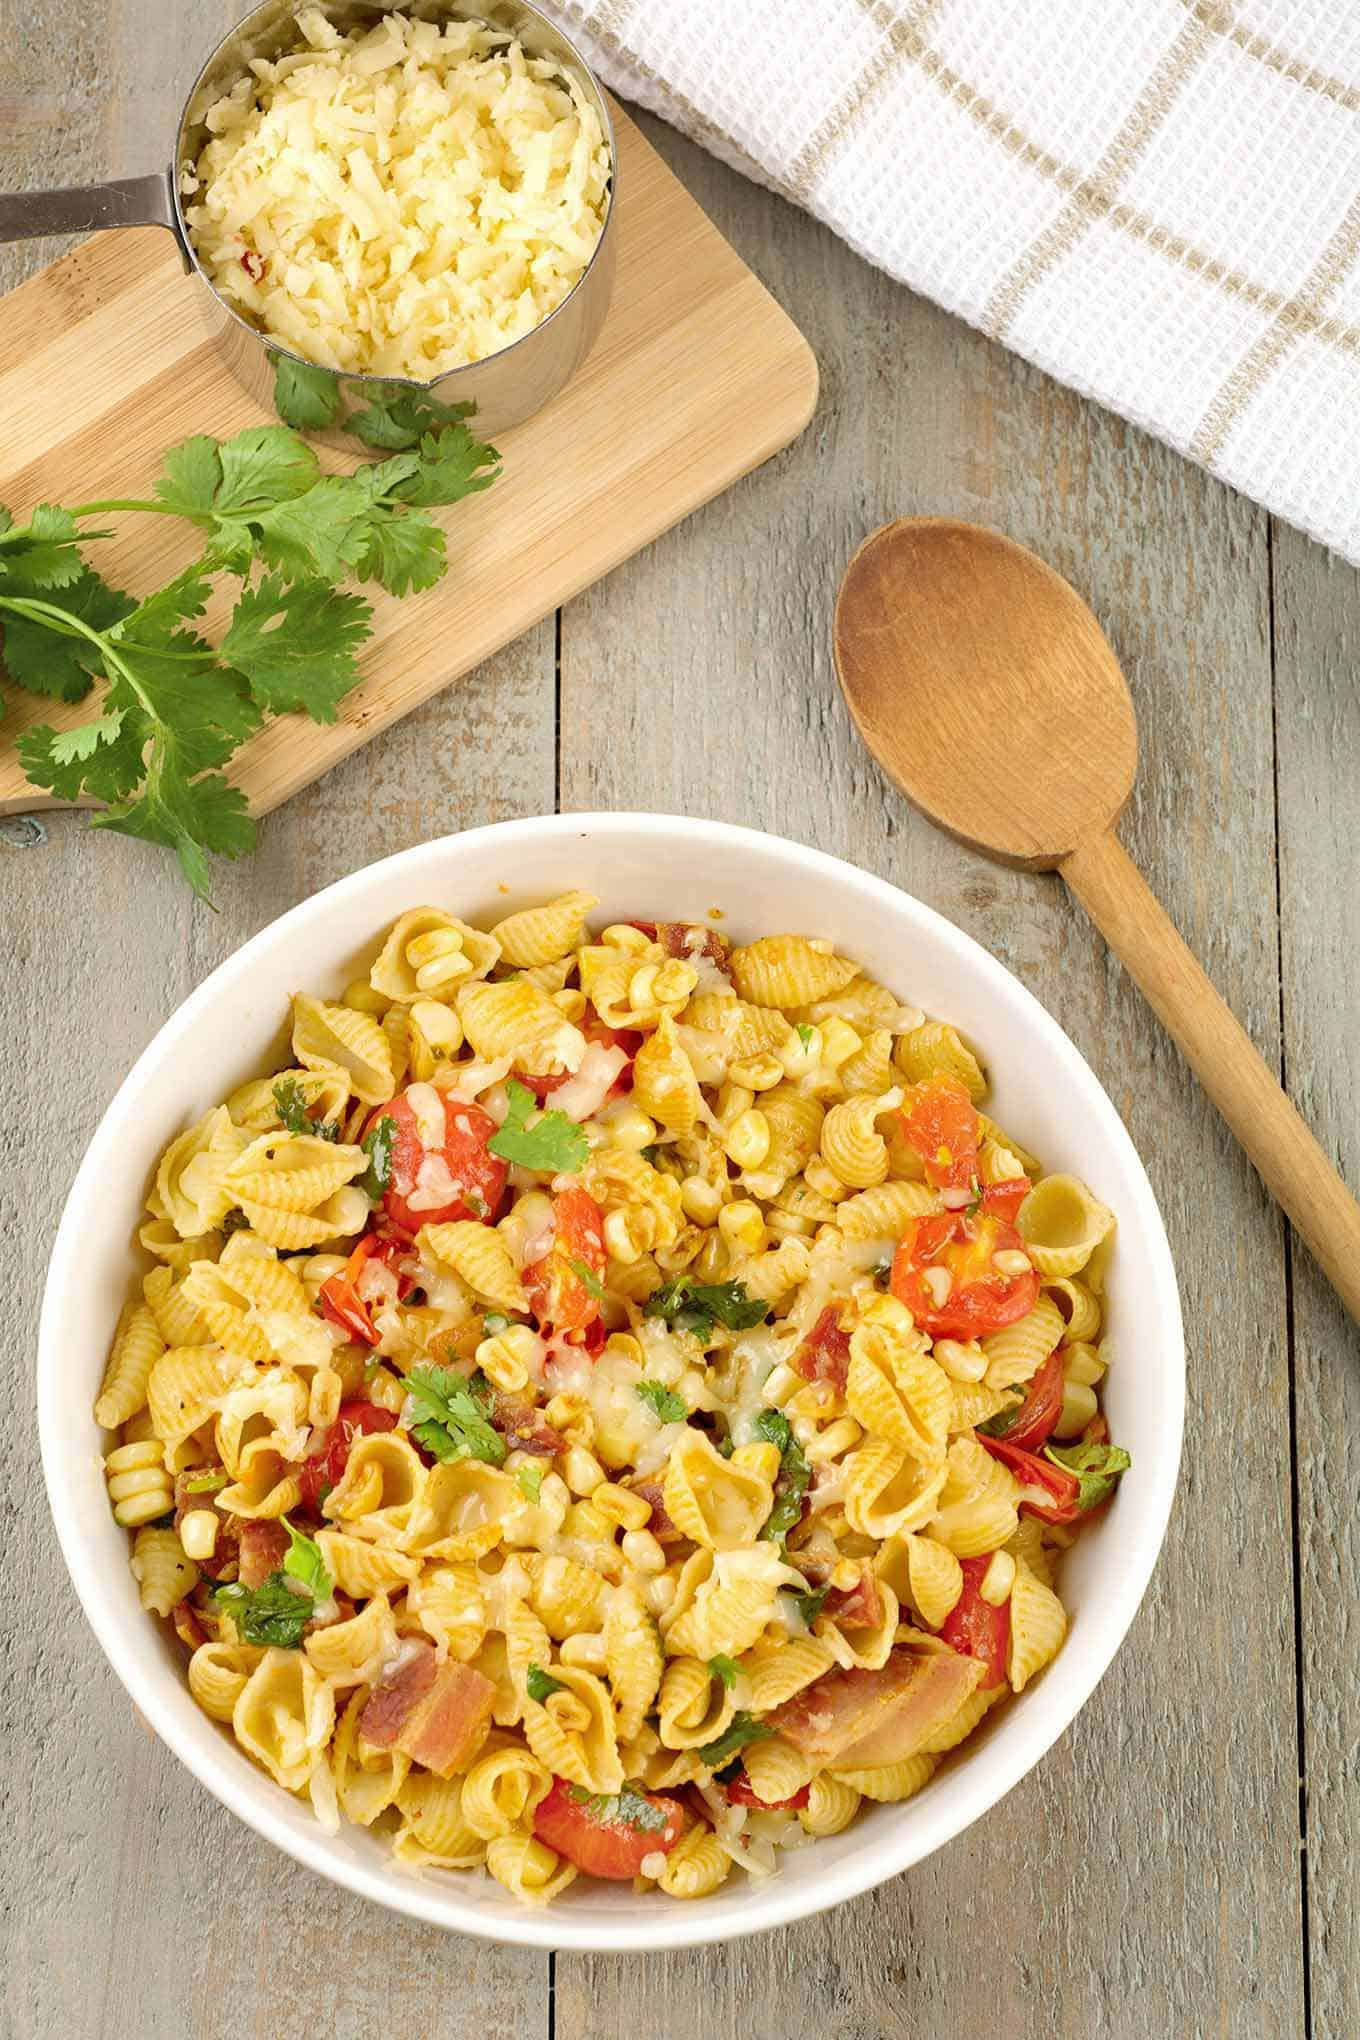 Serving bowl of pasta, bacon, corn, fresh tomatoes, and cheese surrounded by cilantro, grated cheese and wooden spoon.